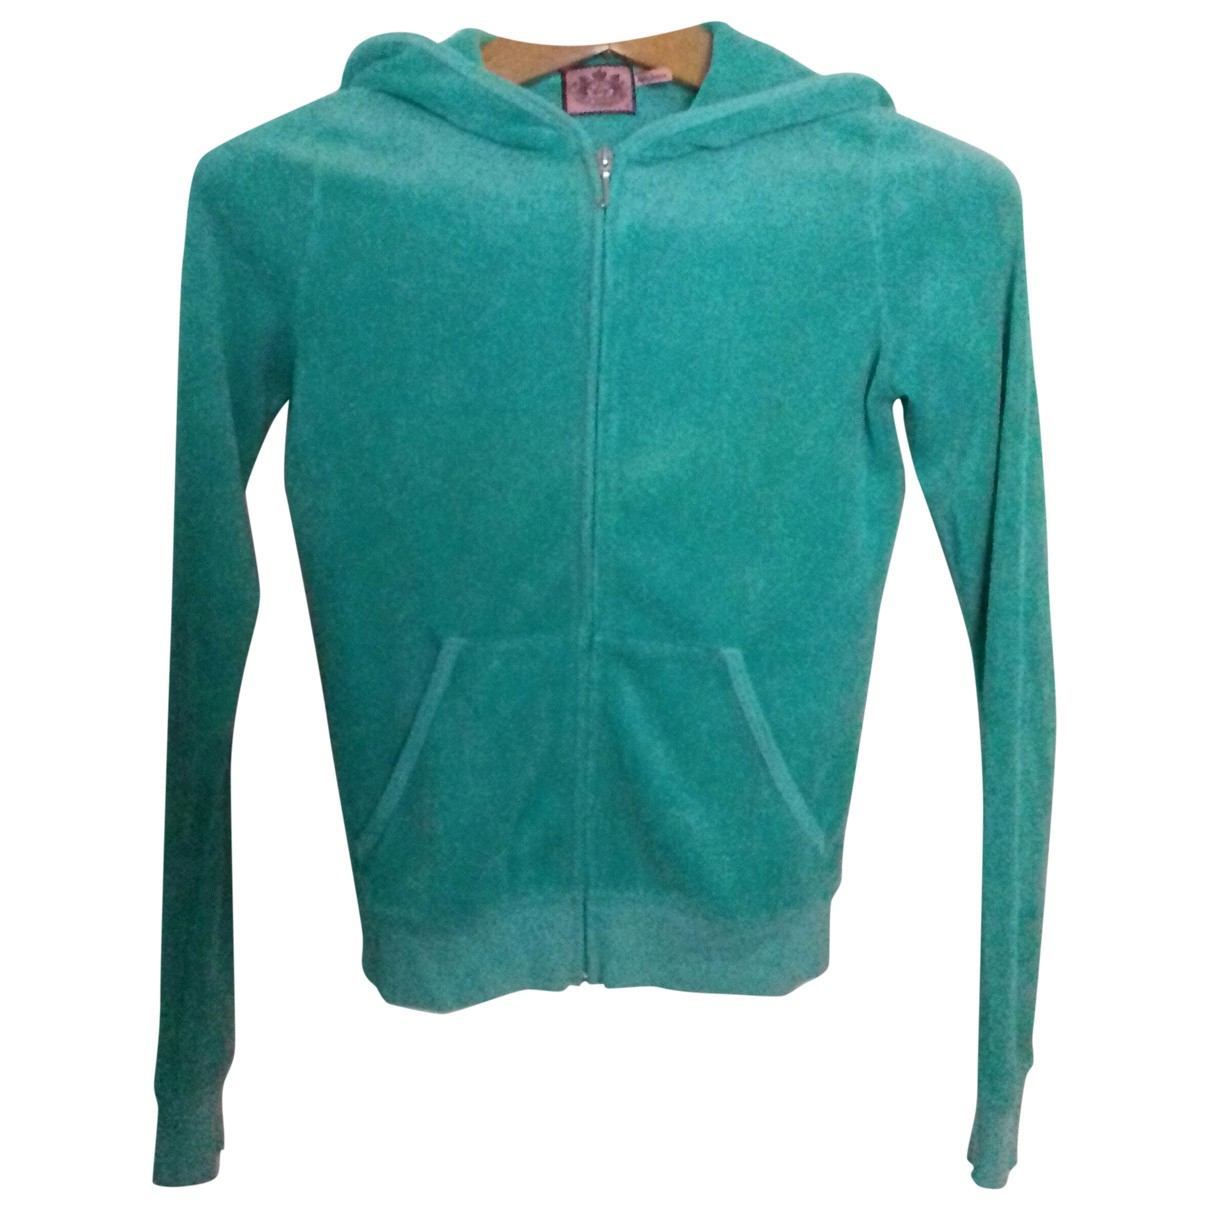 Juicy Couture N Turquoise Cotton Knitwear for Women S International